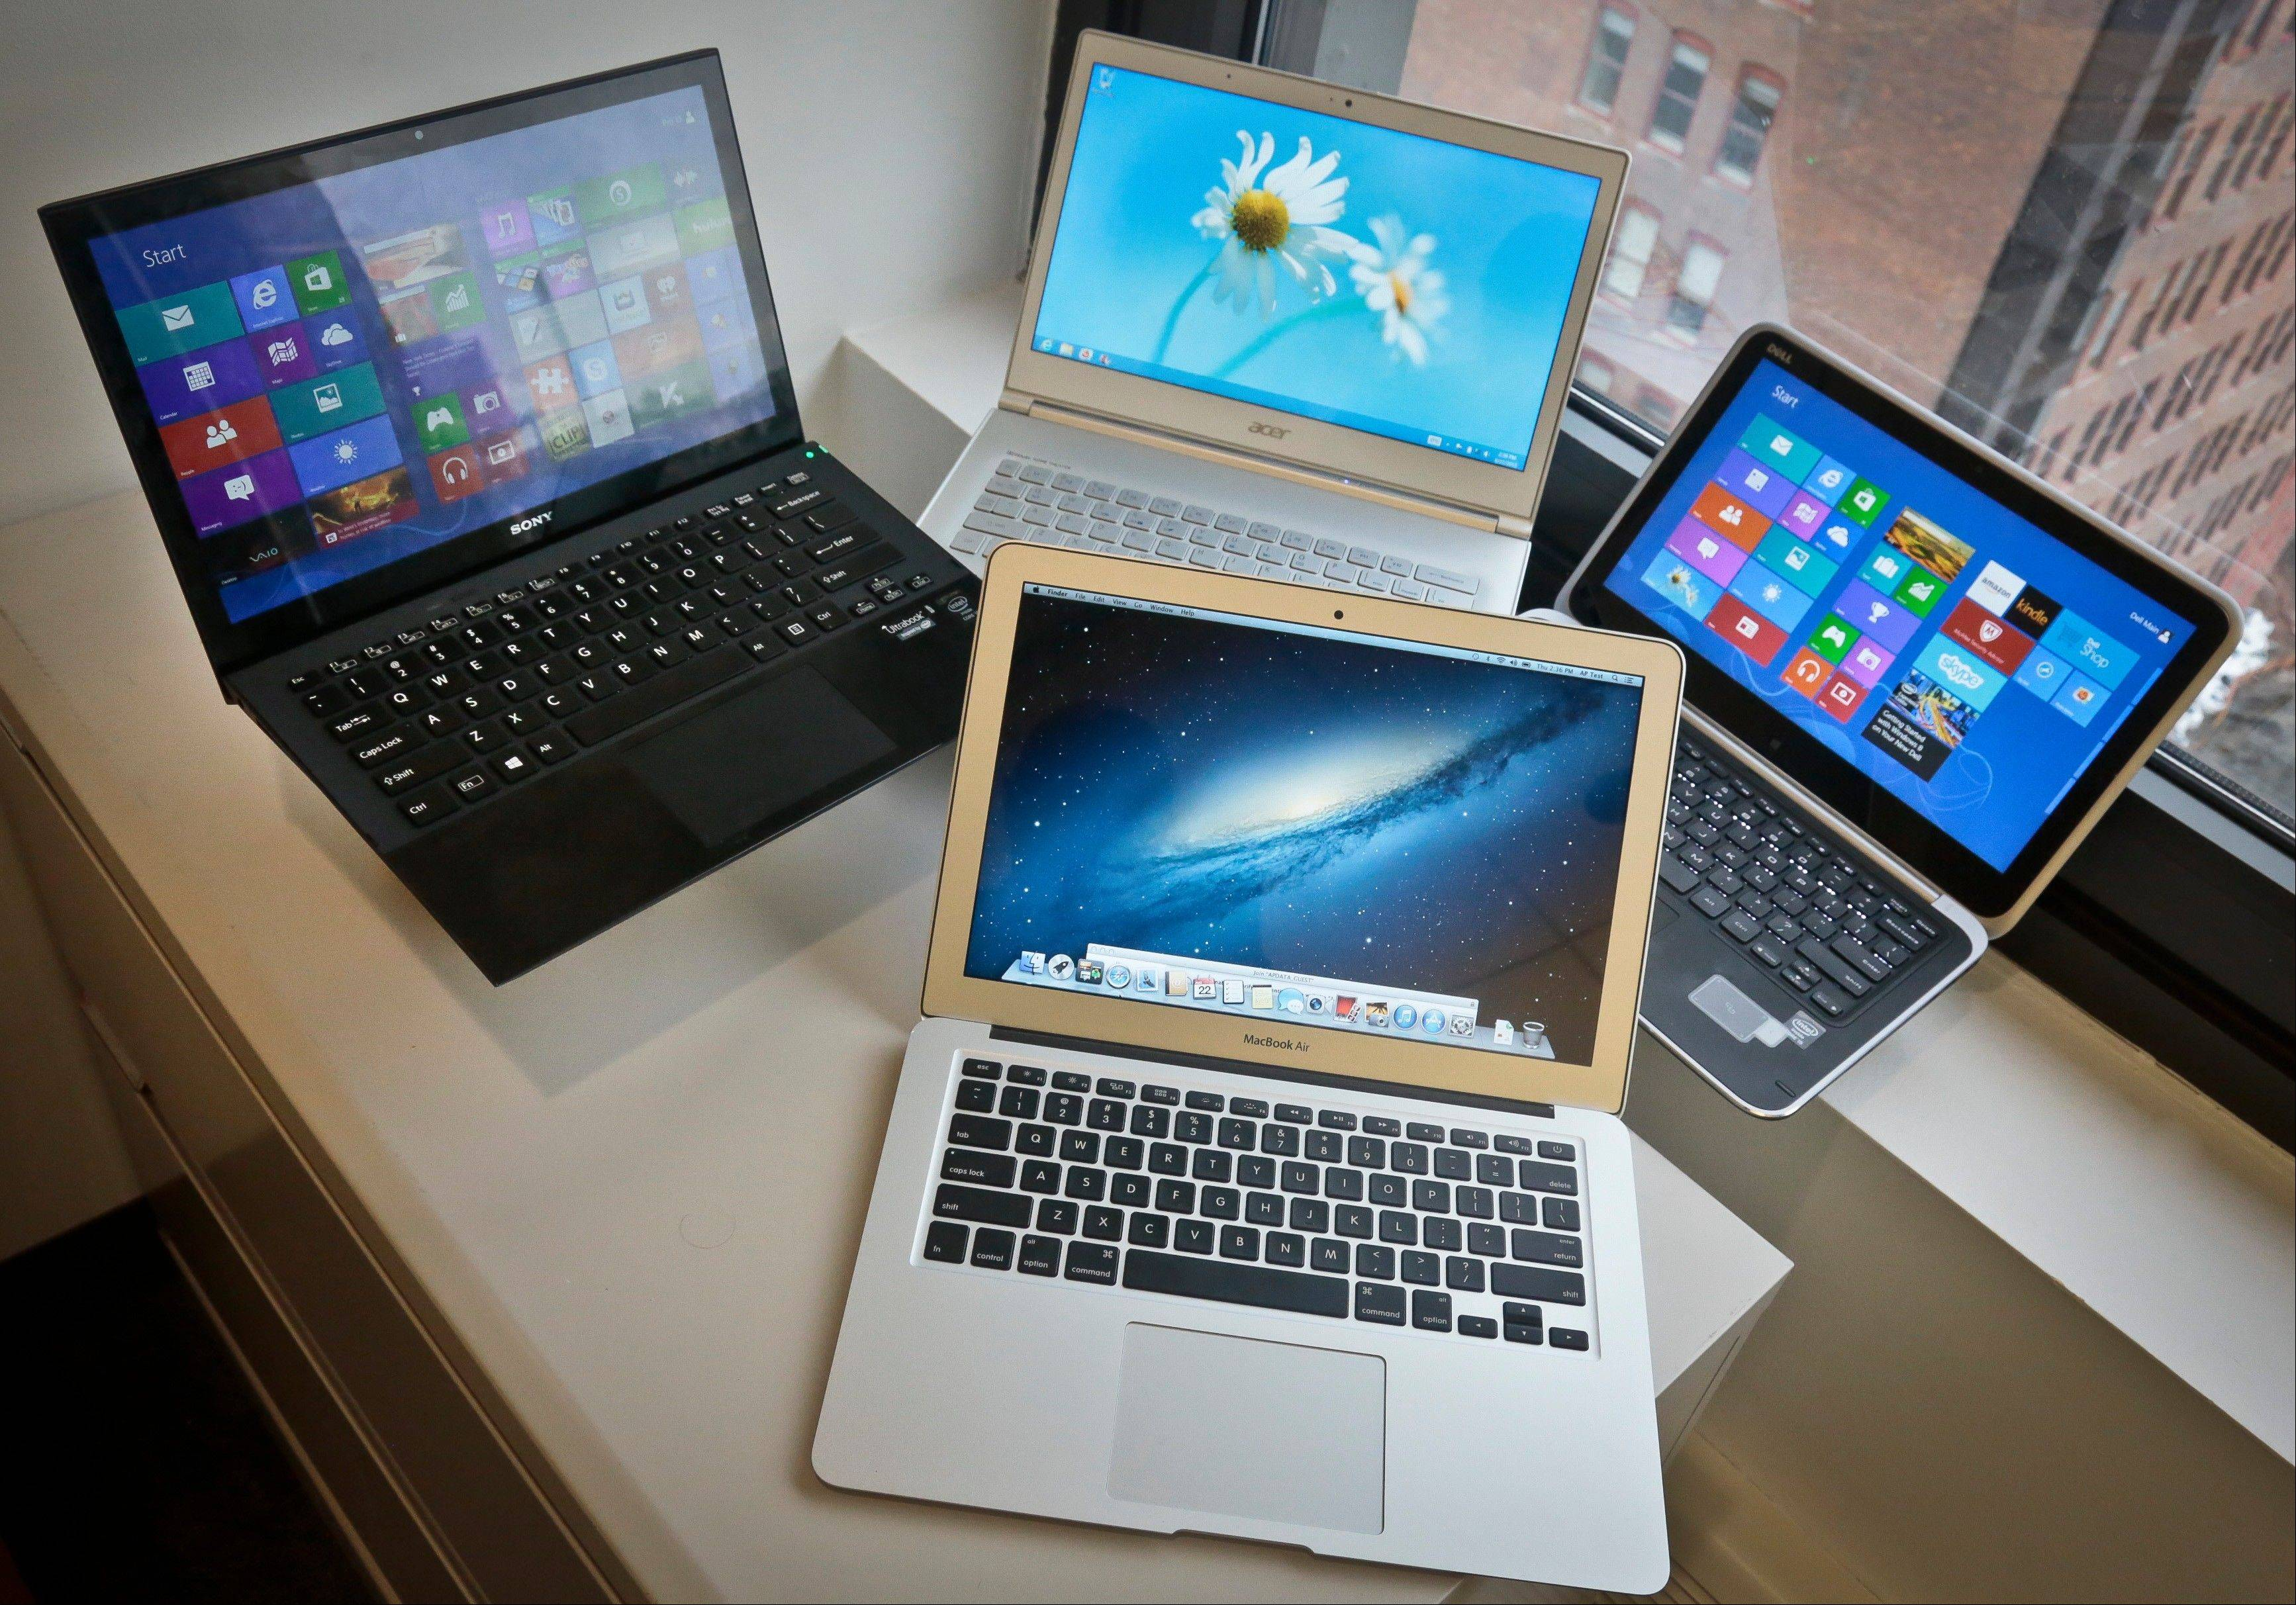 A MacBook Air from Apple, bottom center, a Vaio Pro 13 from Sony, top left, an Aspire S7 from Acer, center, and an XPS 12 from Dell, right, are displayed. Each notebooks has a microprocessors that belongs to a new family of Intel chips called Haswell.